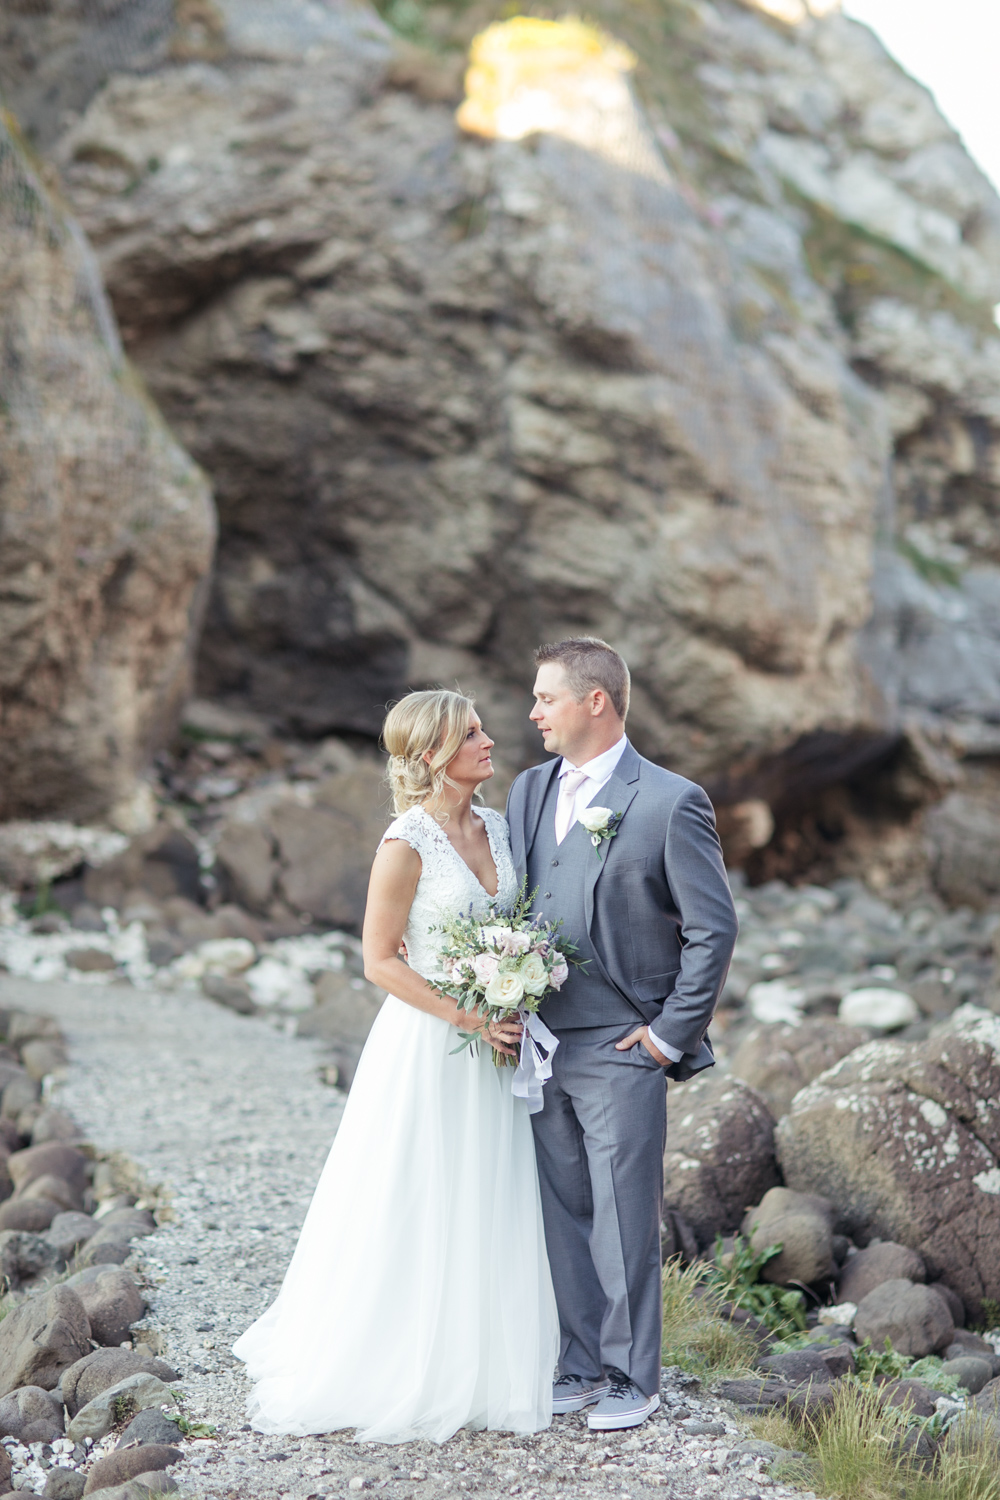 oceanic rocky background with bride and groom bride wearing modern loose dress